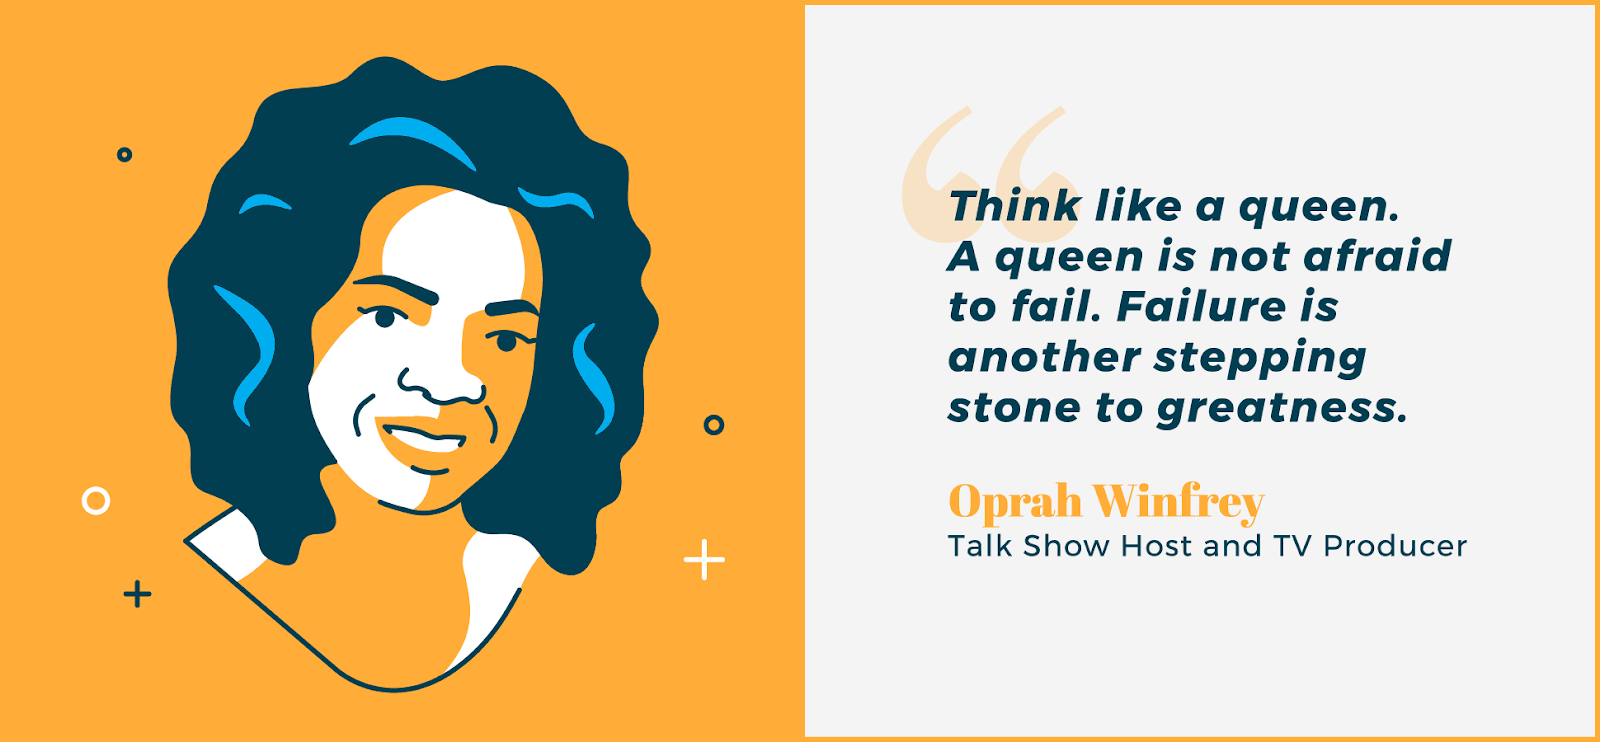 Boss lady quotes - Oprah Winfrey